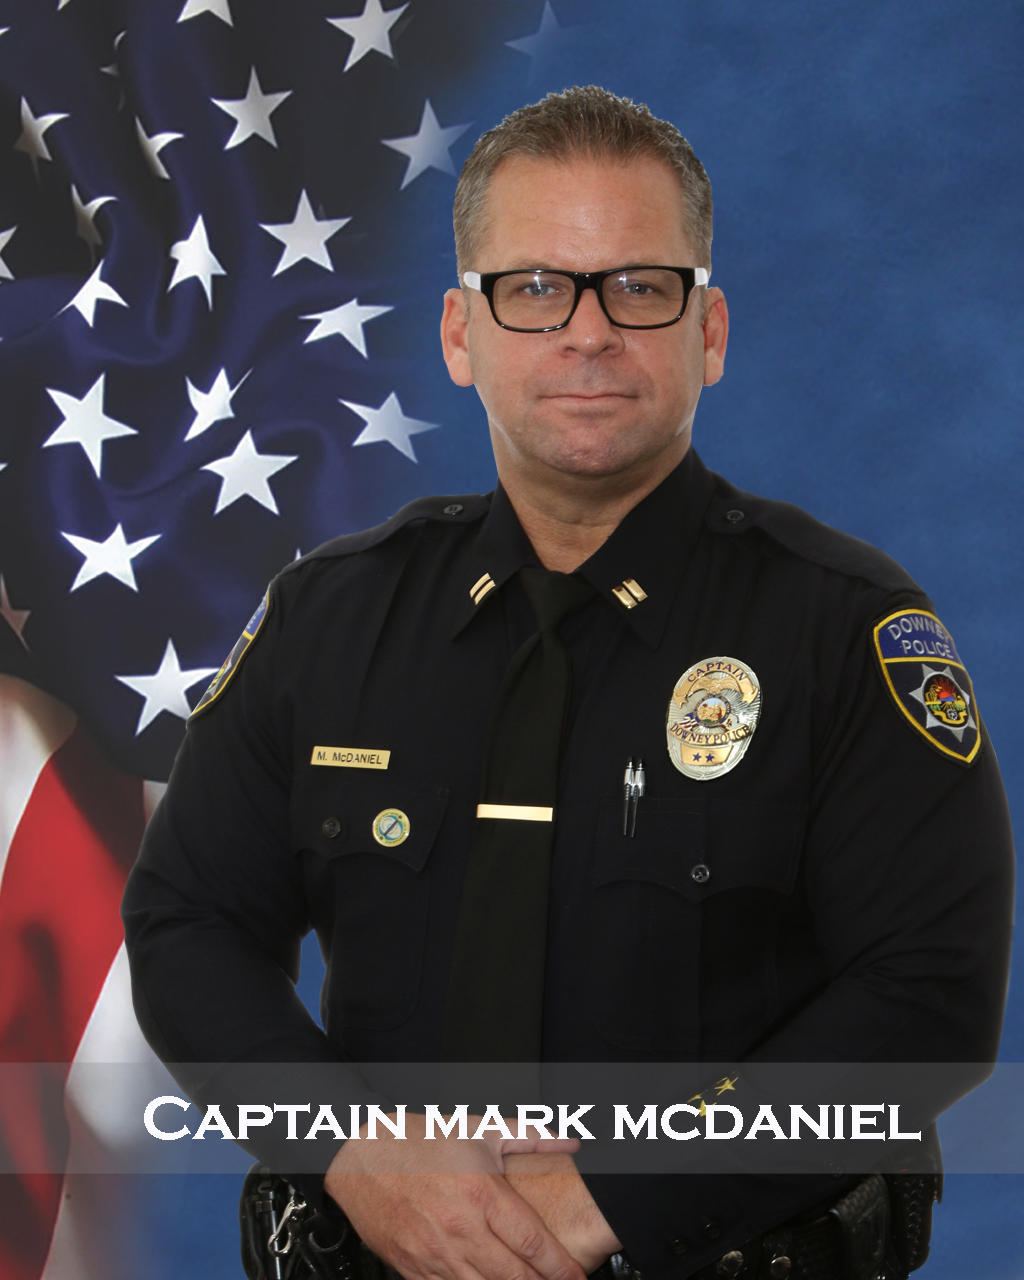 Portrait of Captain McDaniel